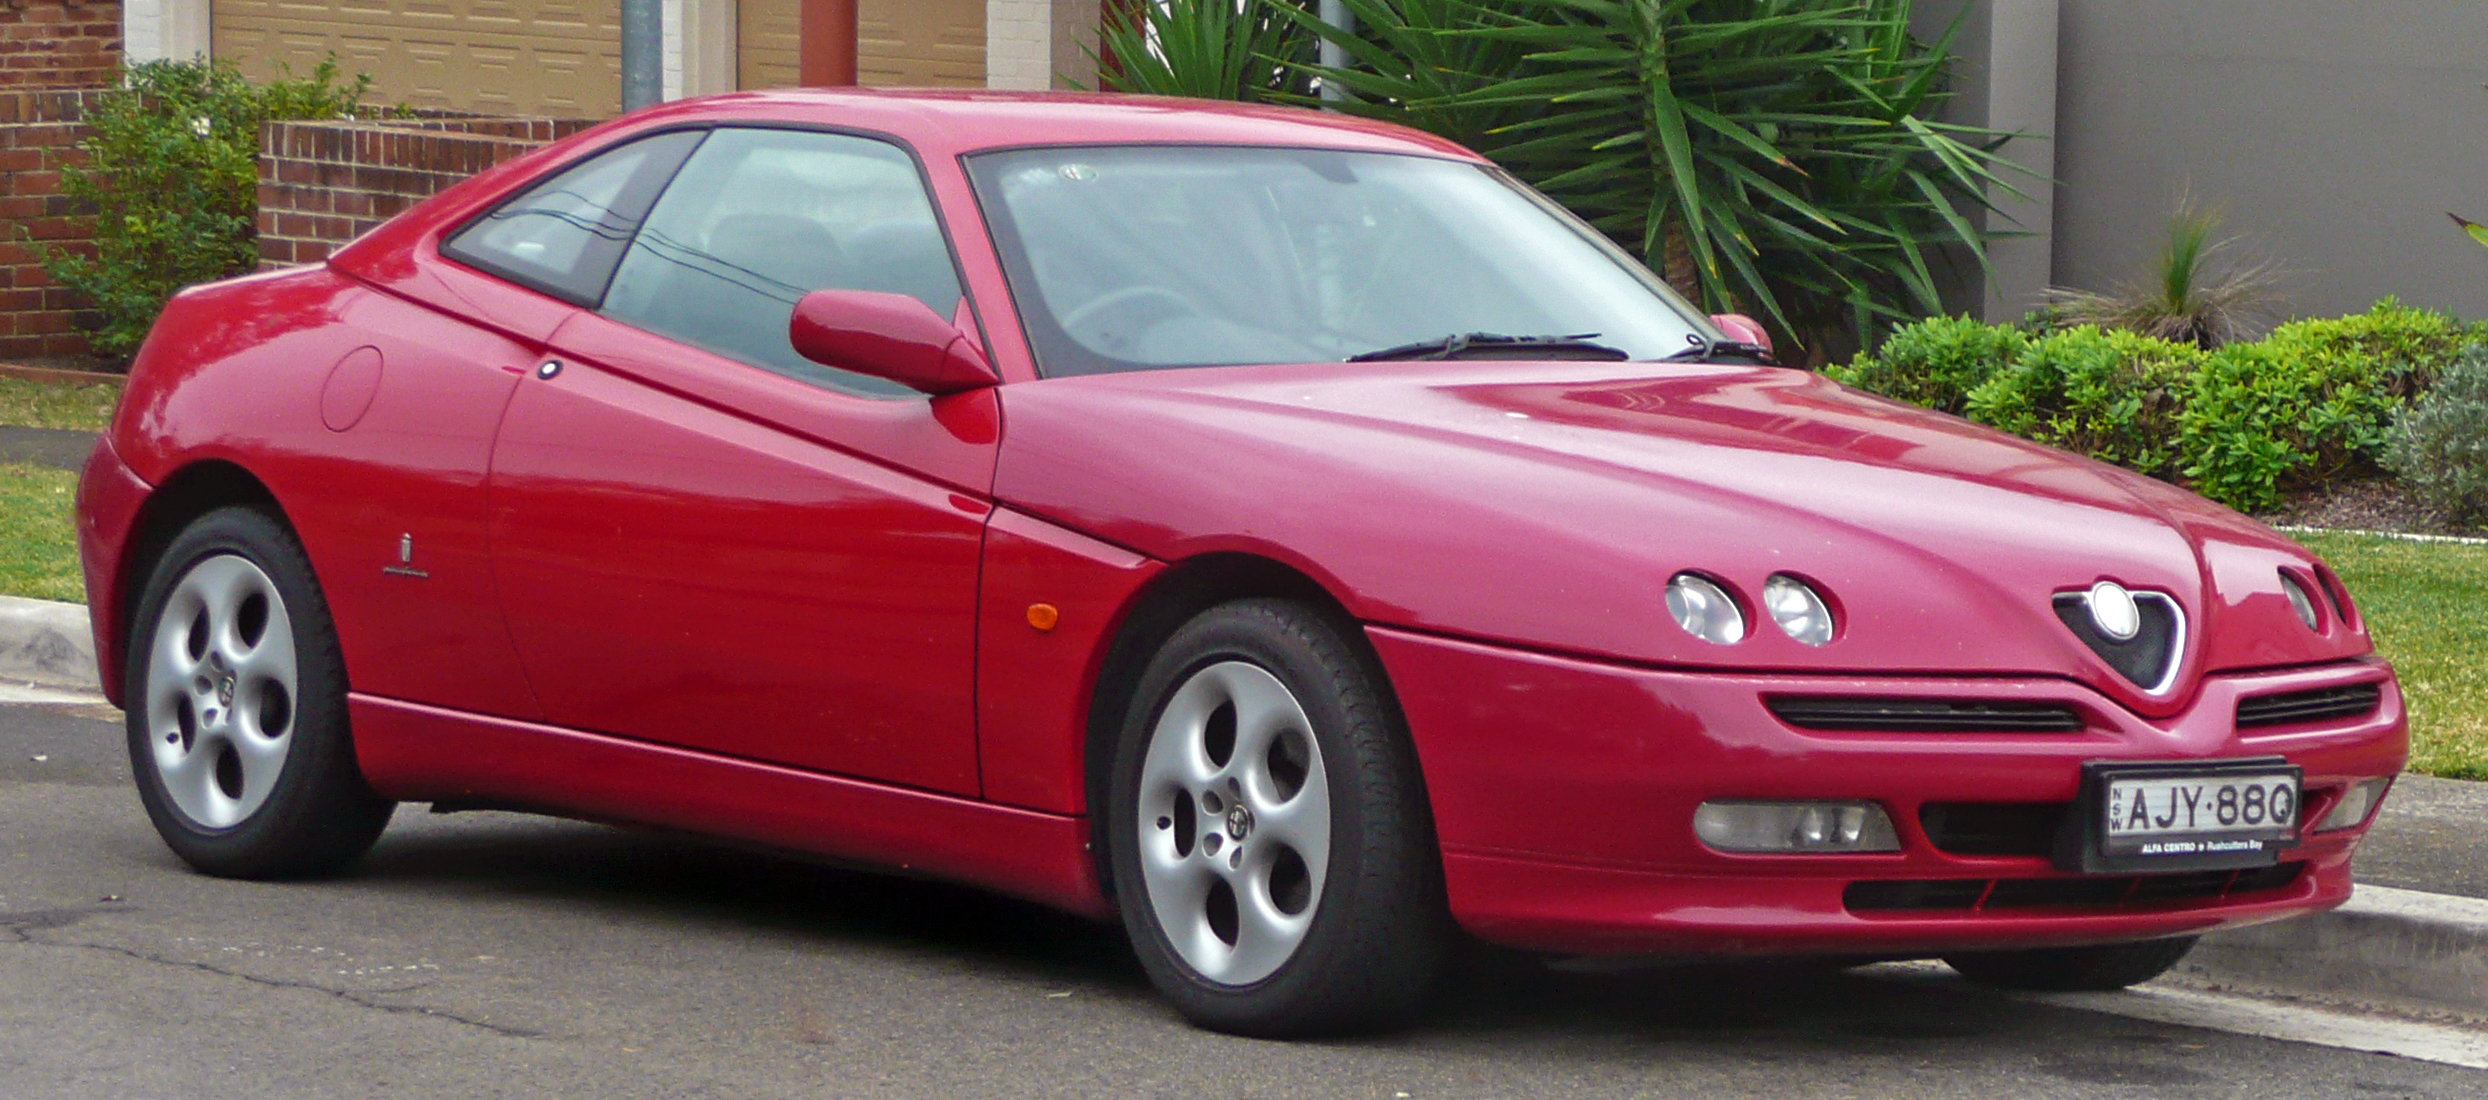 2001 alfa romeo gtv 916 pictures information and specs auto. Black Bedroom Furniture Sets. Home Design Ideas